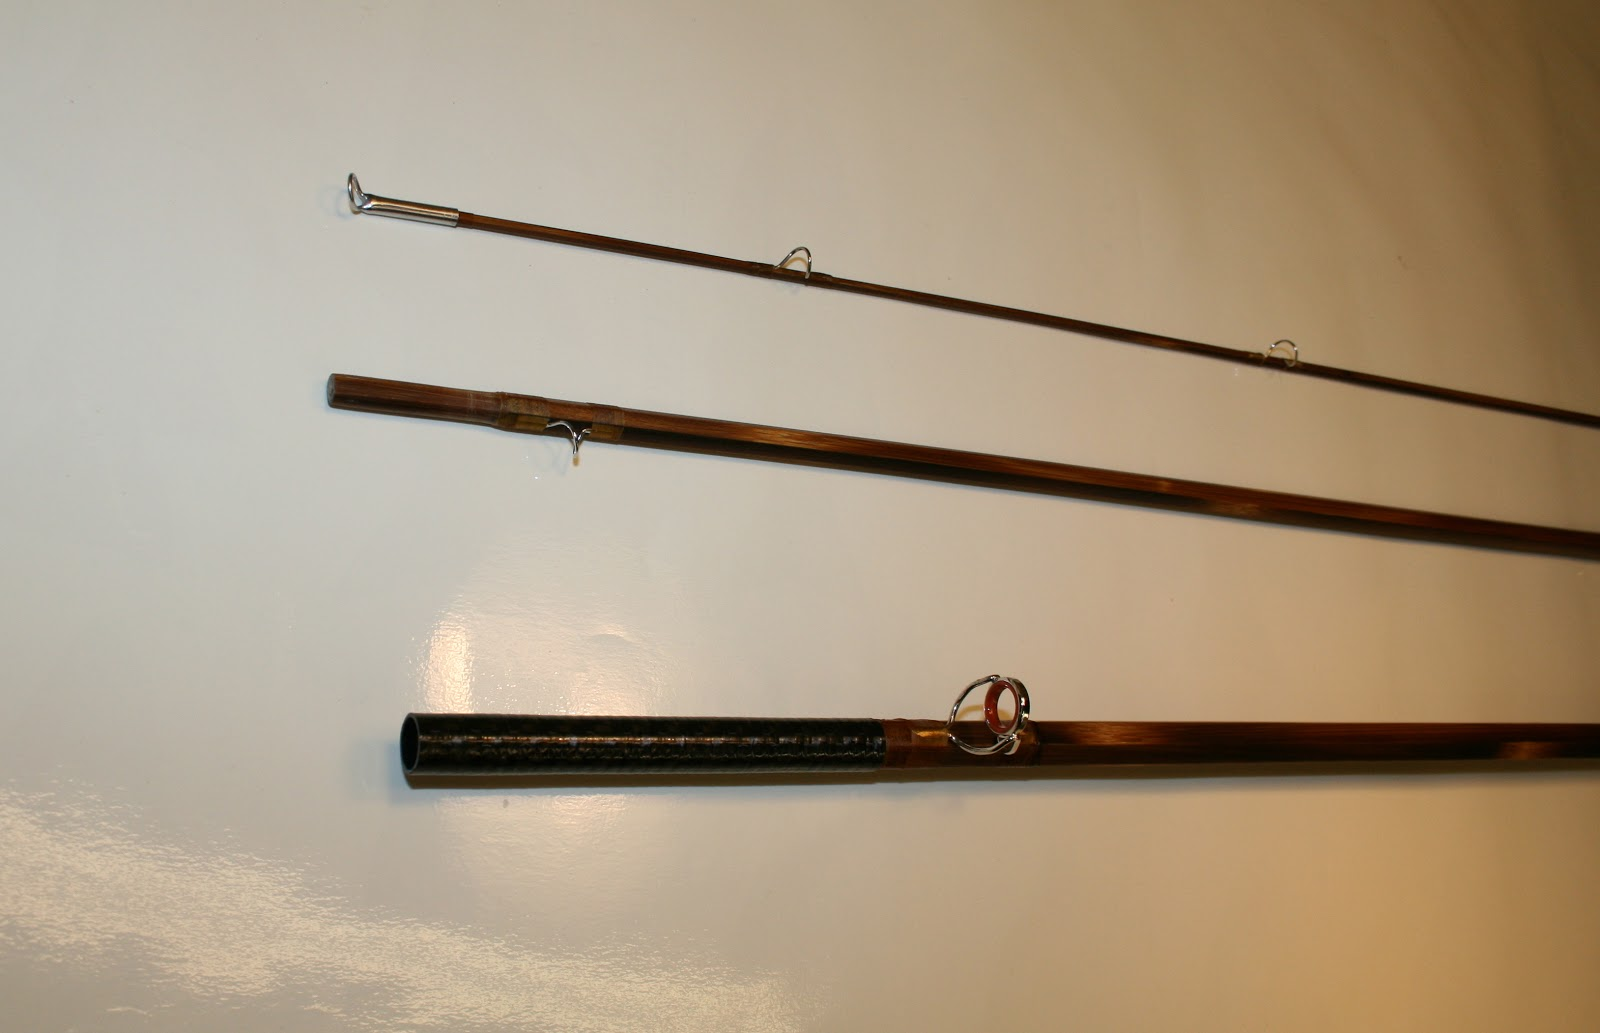 Carpenter bros bamboo fly rods spey rod with carbon